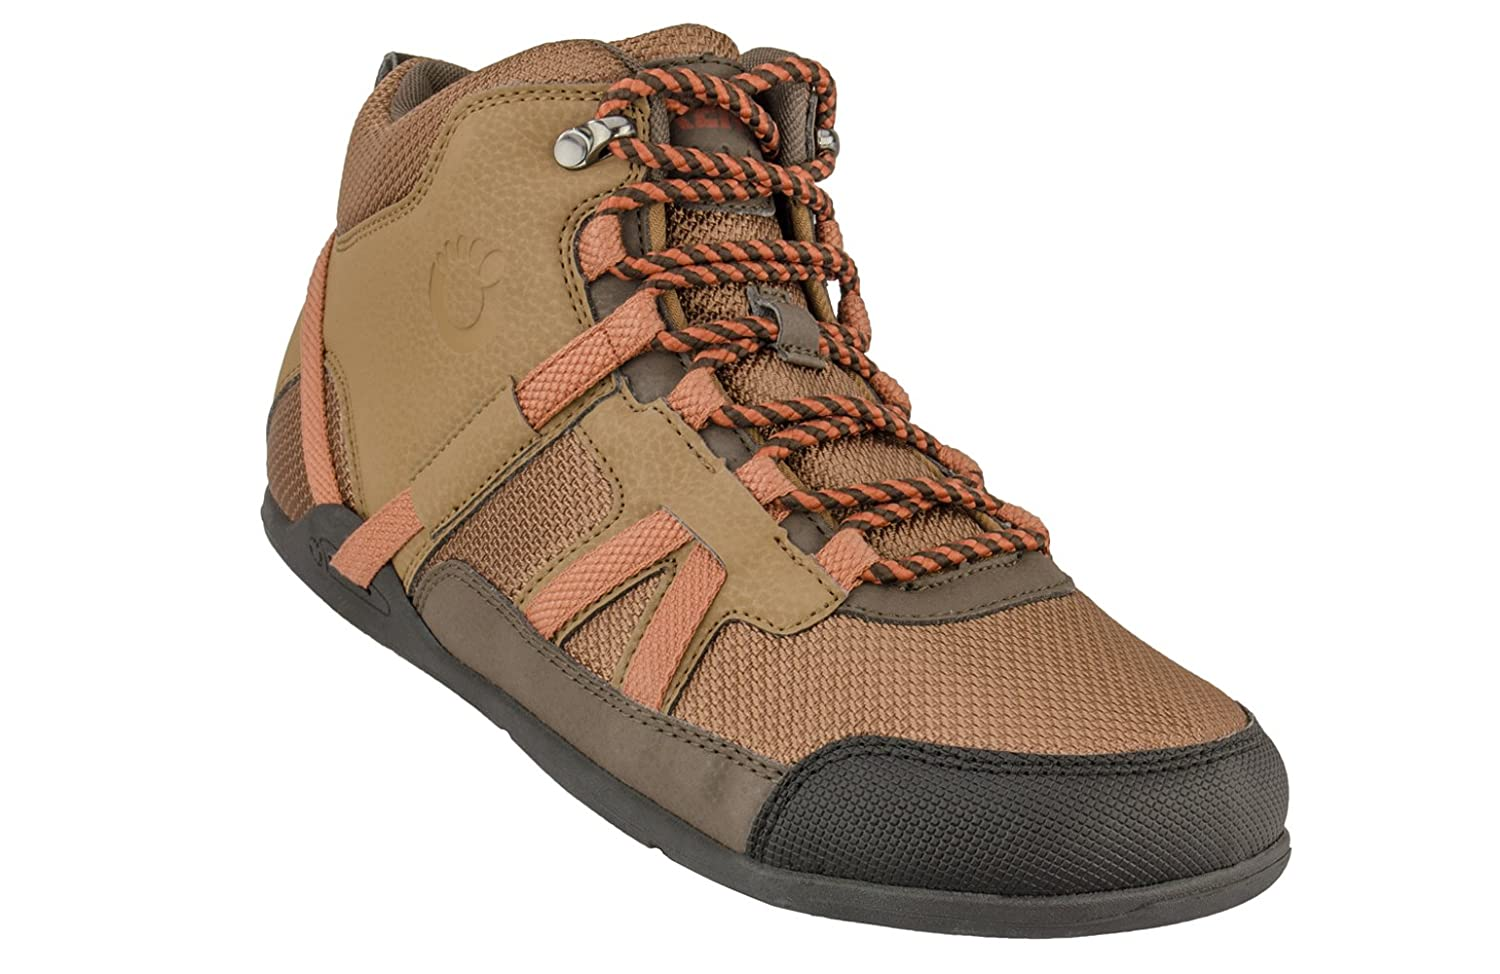 Xero Shoes Daylight Hiker Lightweight Hiking Boot for Men - Minimalist, Barefoot-Inspired Hiking Shoe - Zero Drop Sole DHM-MQRU-PP